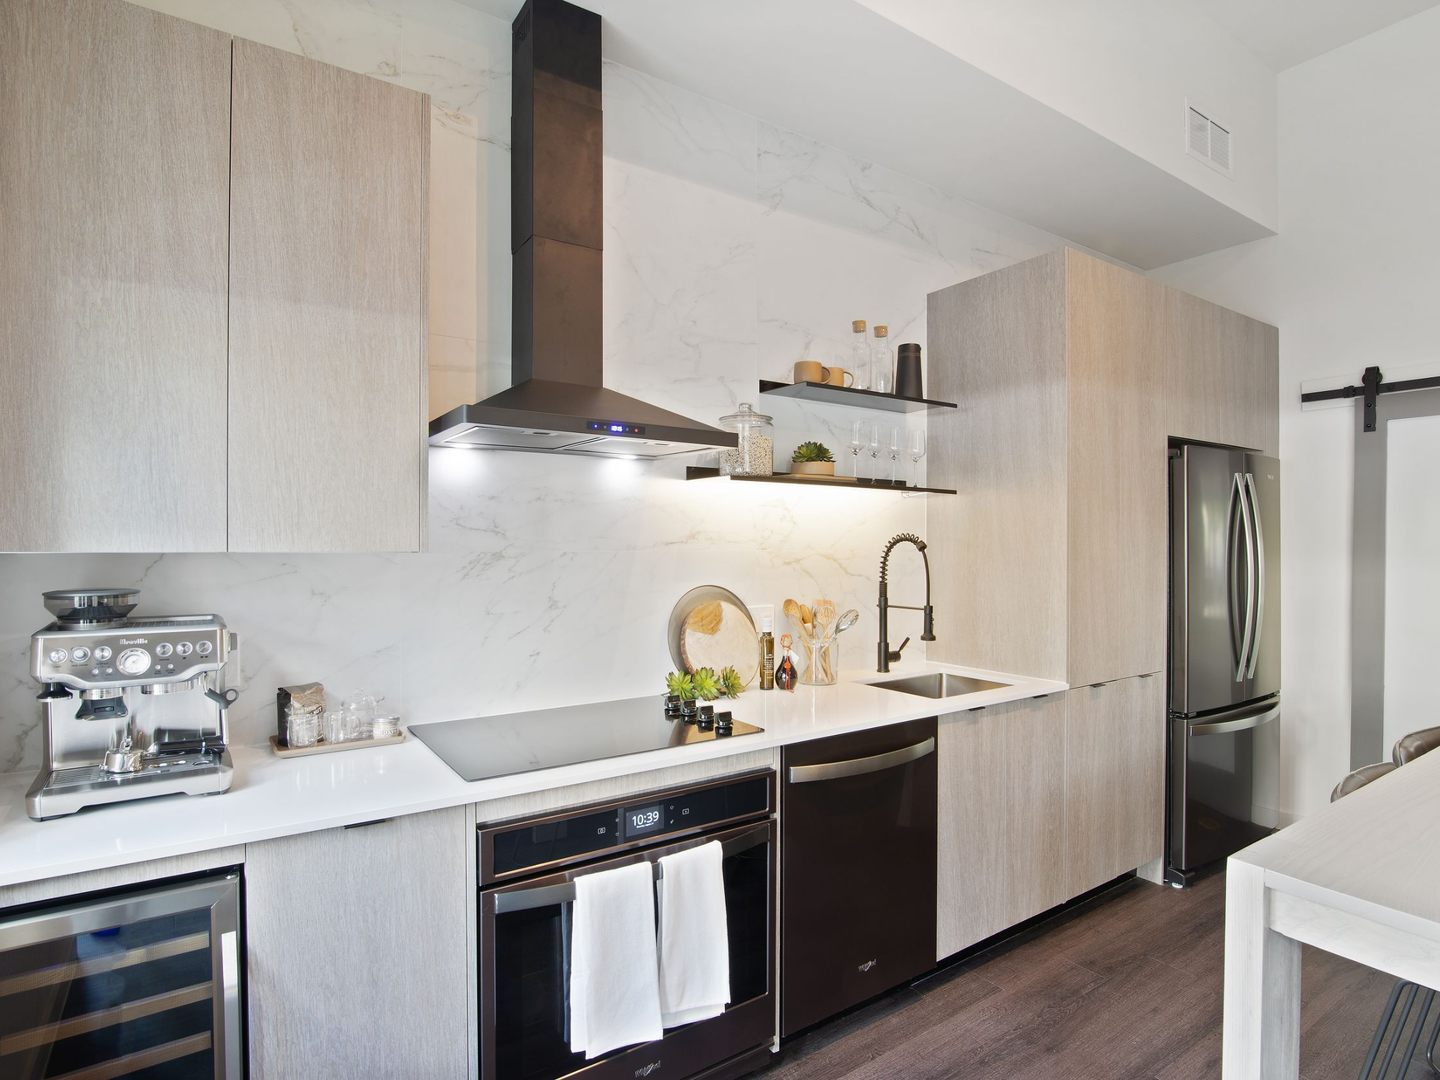 Apartment kitchen with black stainless steel appliances